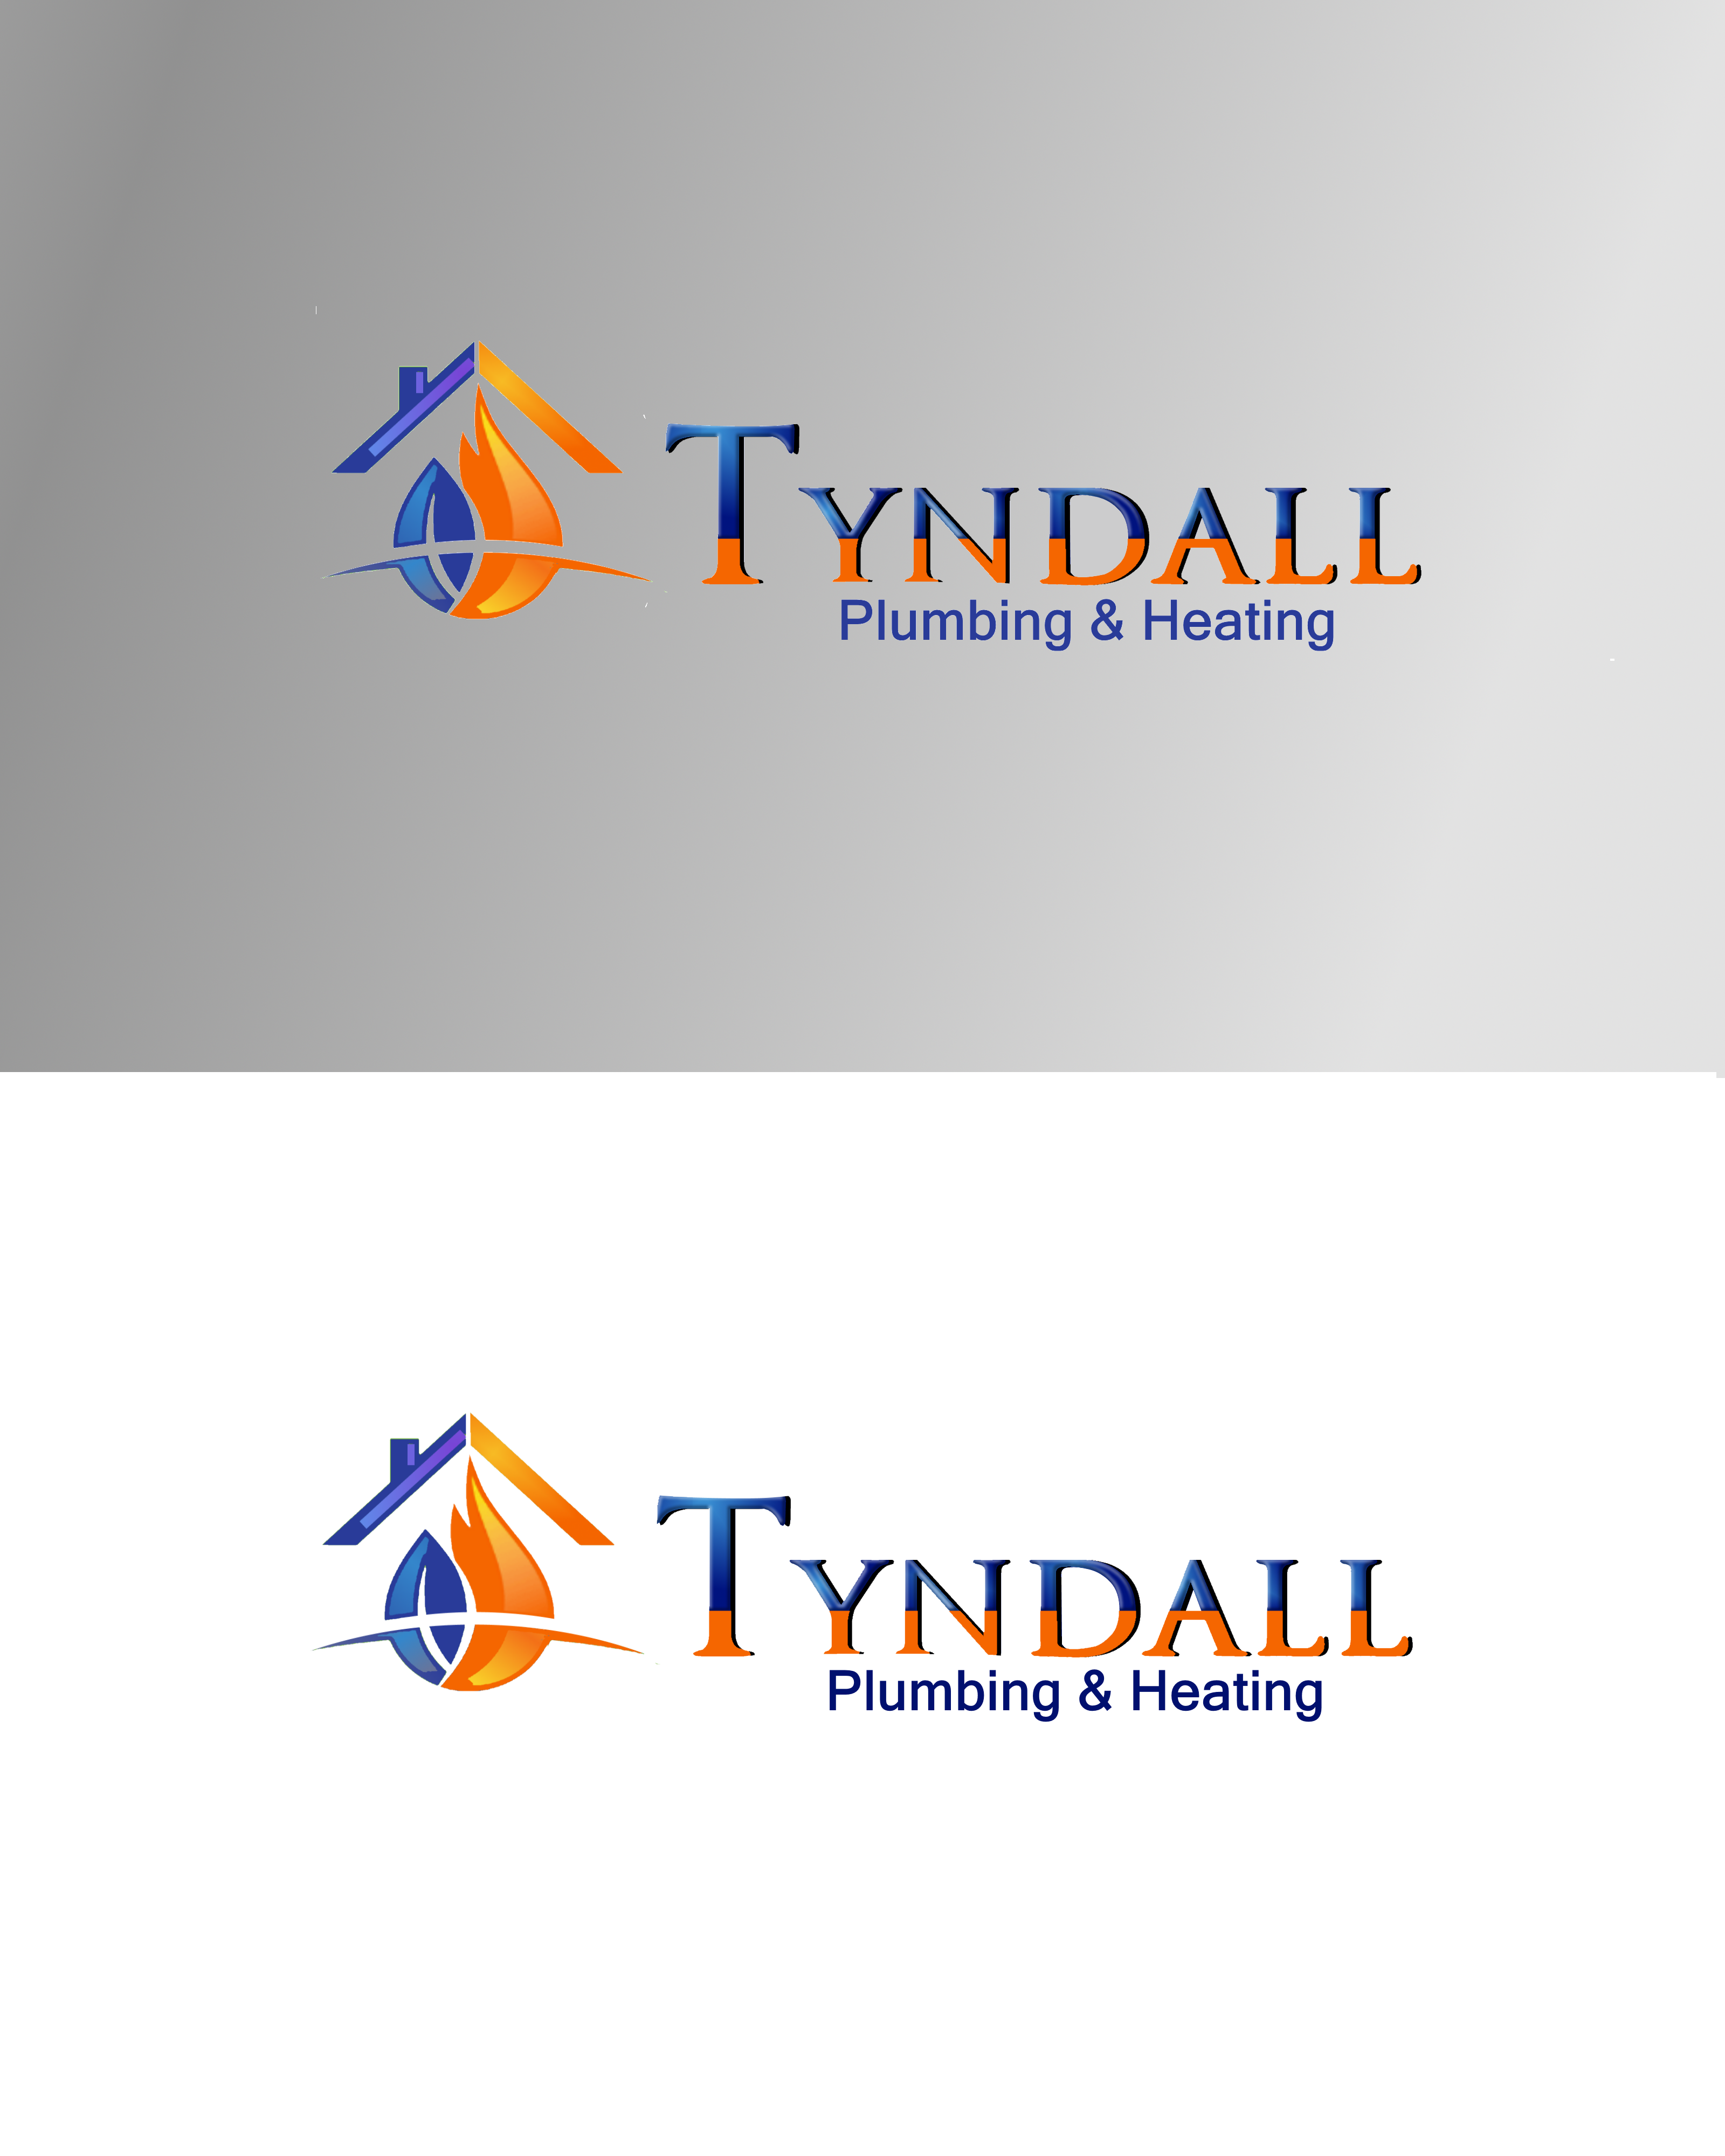 Logo Design by Roberto Bassi - Entry No. 69 in the Logo Design Contest Imaginative Logo Design for Tyndall Plumbing & Heating.